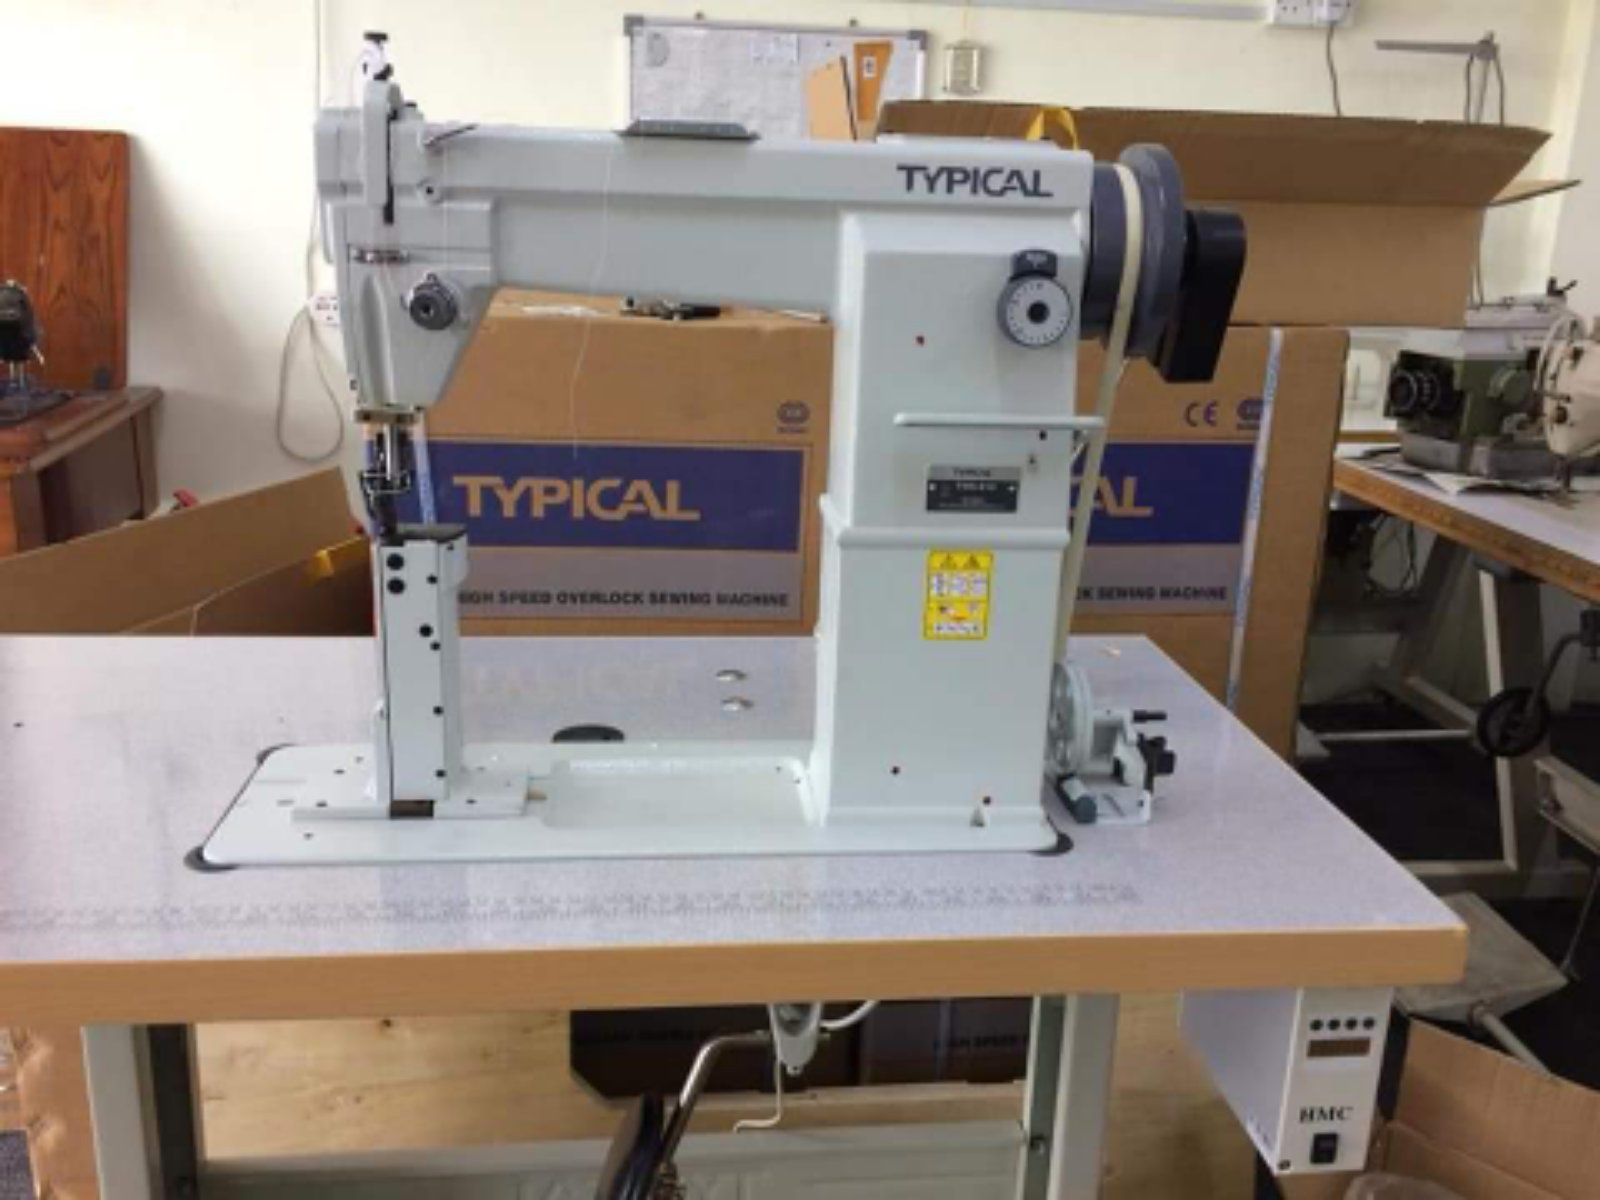 Typical Sewing Machine